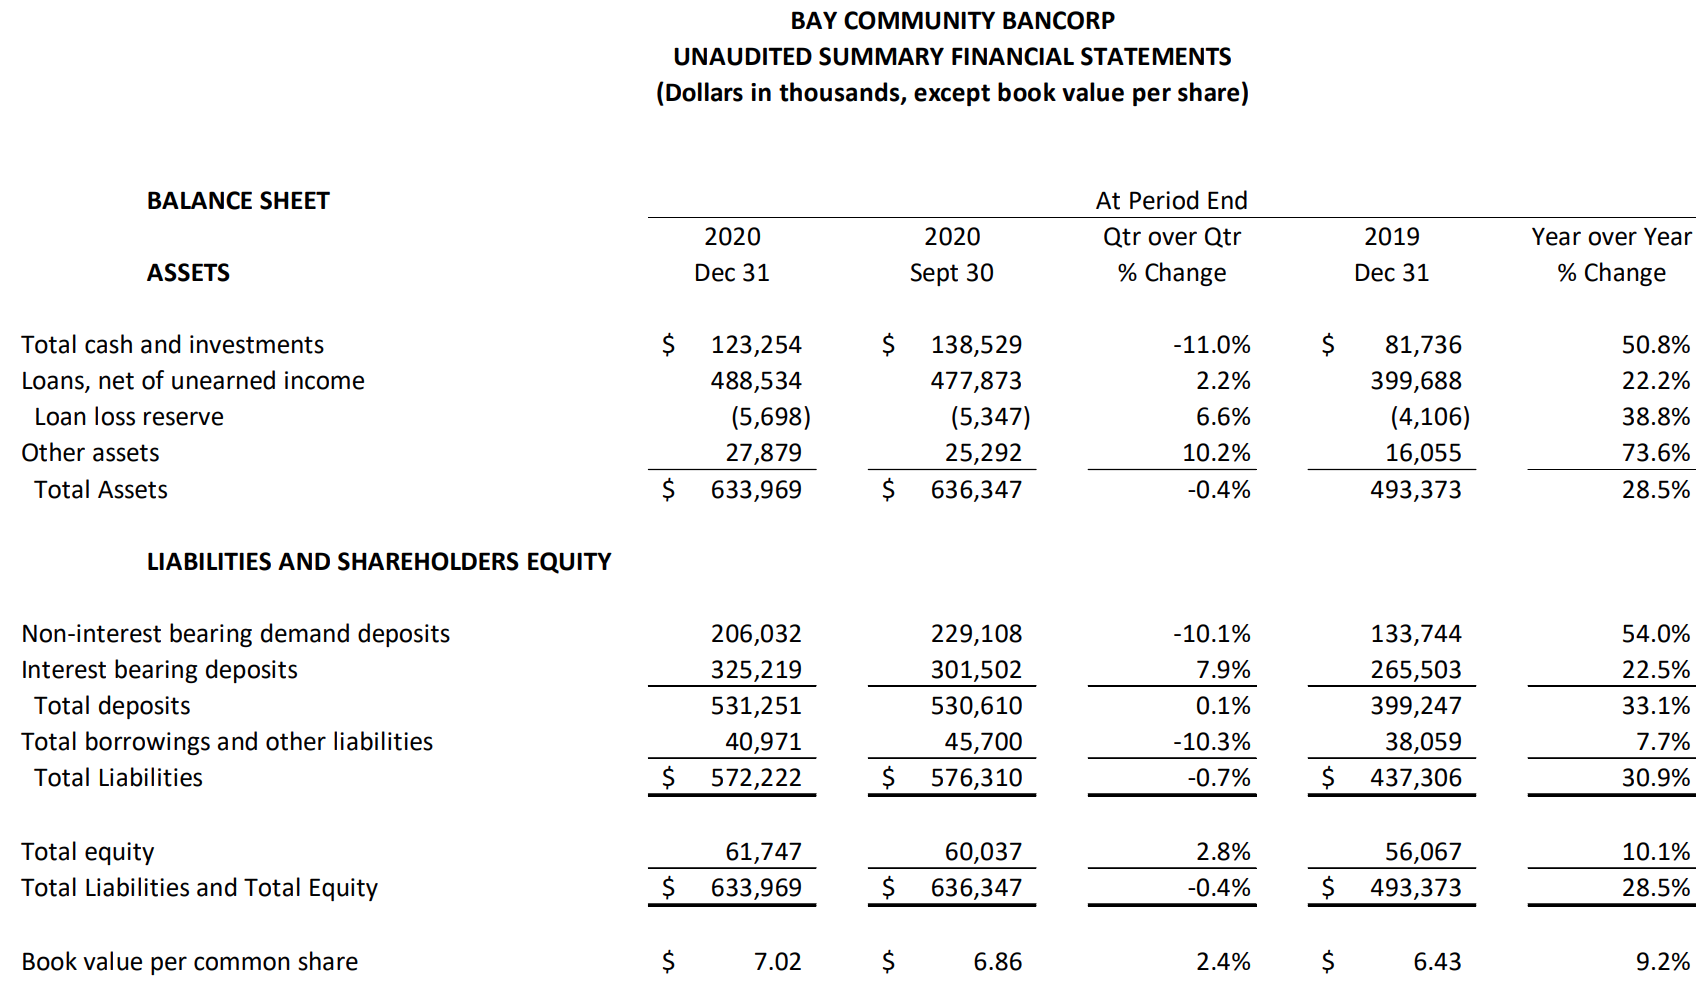 BAY COMMUNITY BANCORP UNAUDITED SUMMARY FINANCIAL STATEMENTS Table pt 2